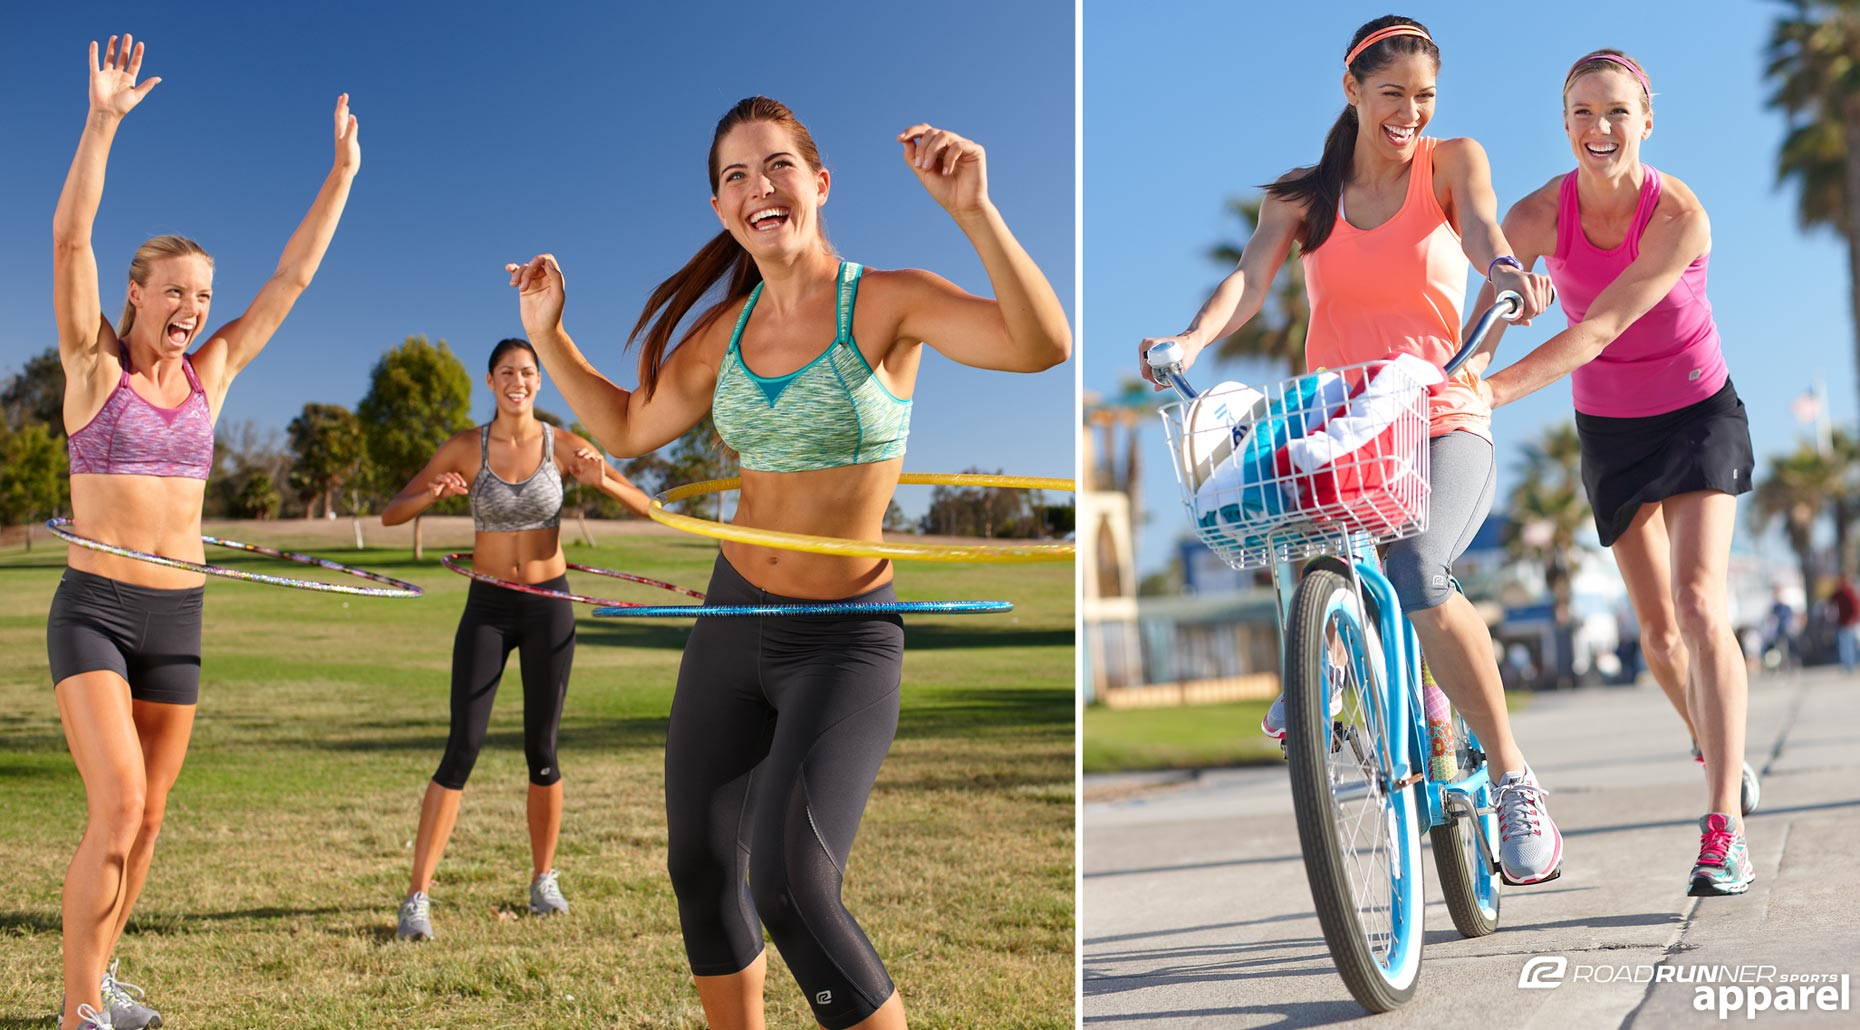 Hula_Hoop_Girls_on_bike